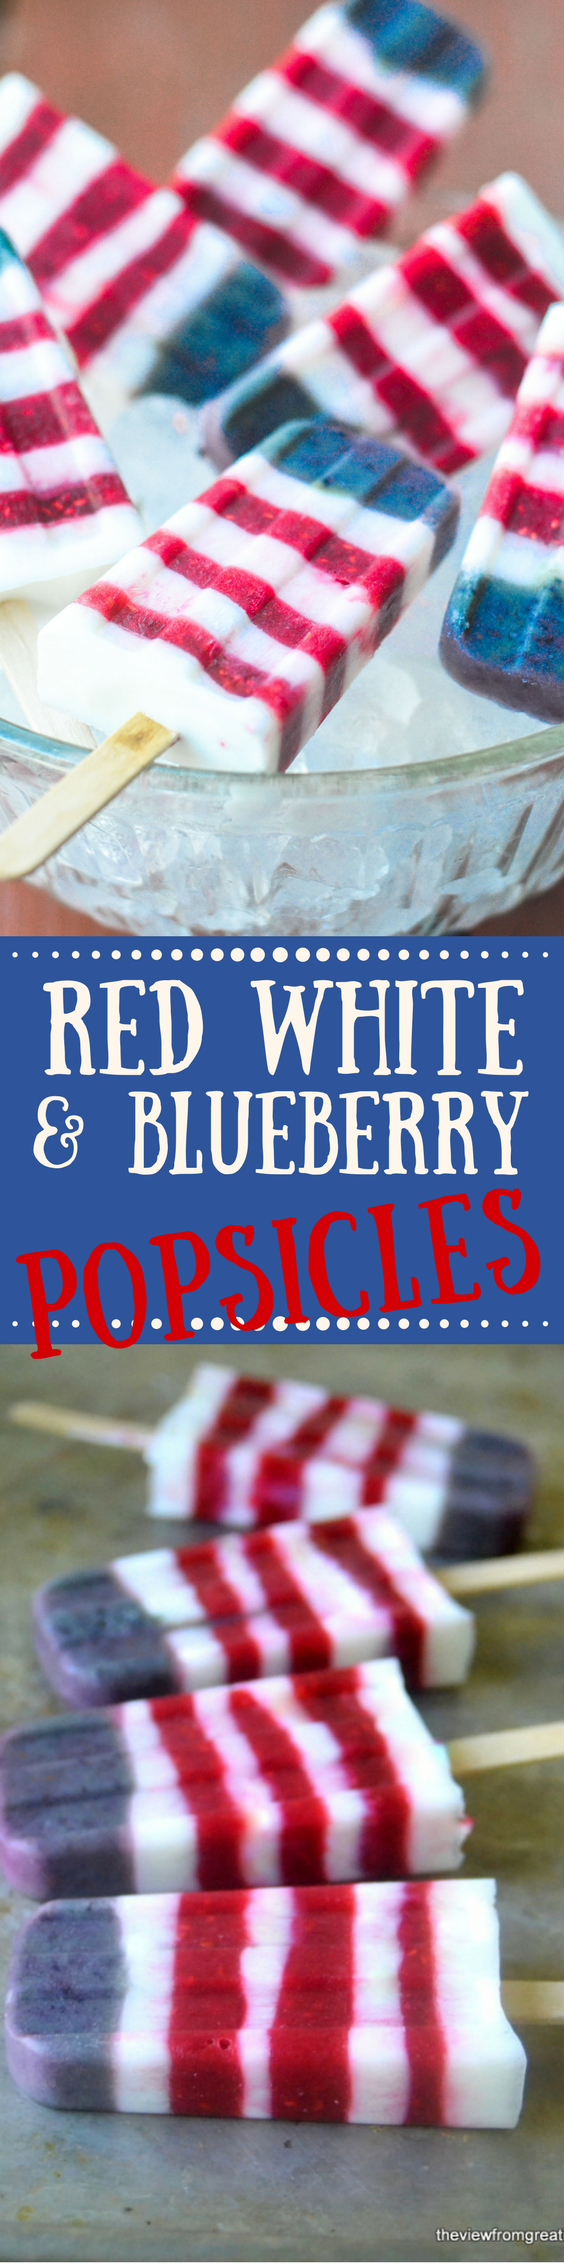 Red White and Blueberry Popsicles pin